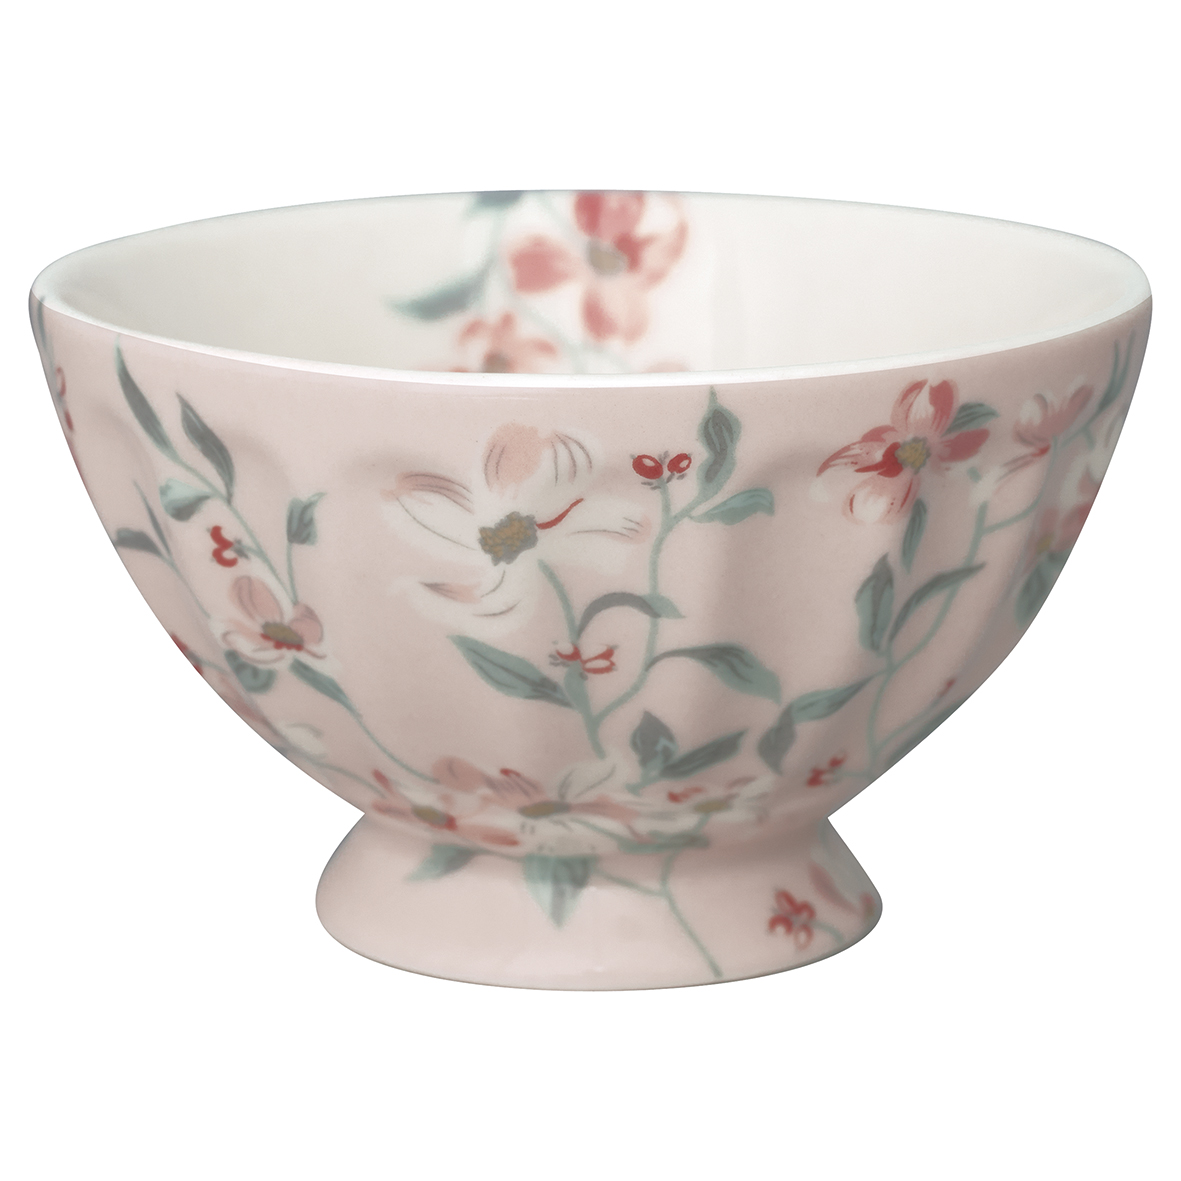 Greengate French Bowl Medium, Jolie Pale Pink